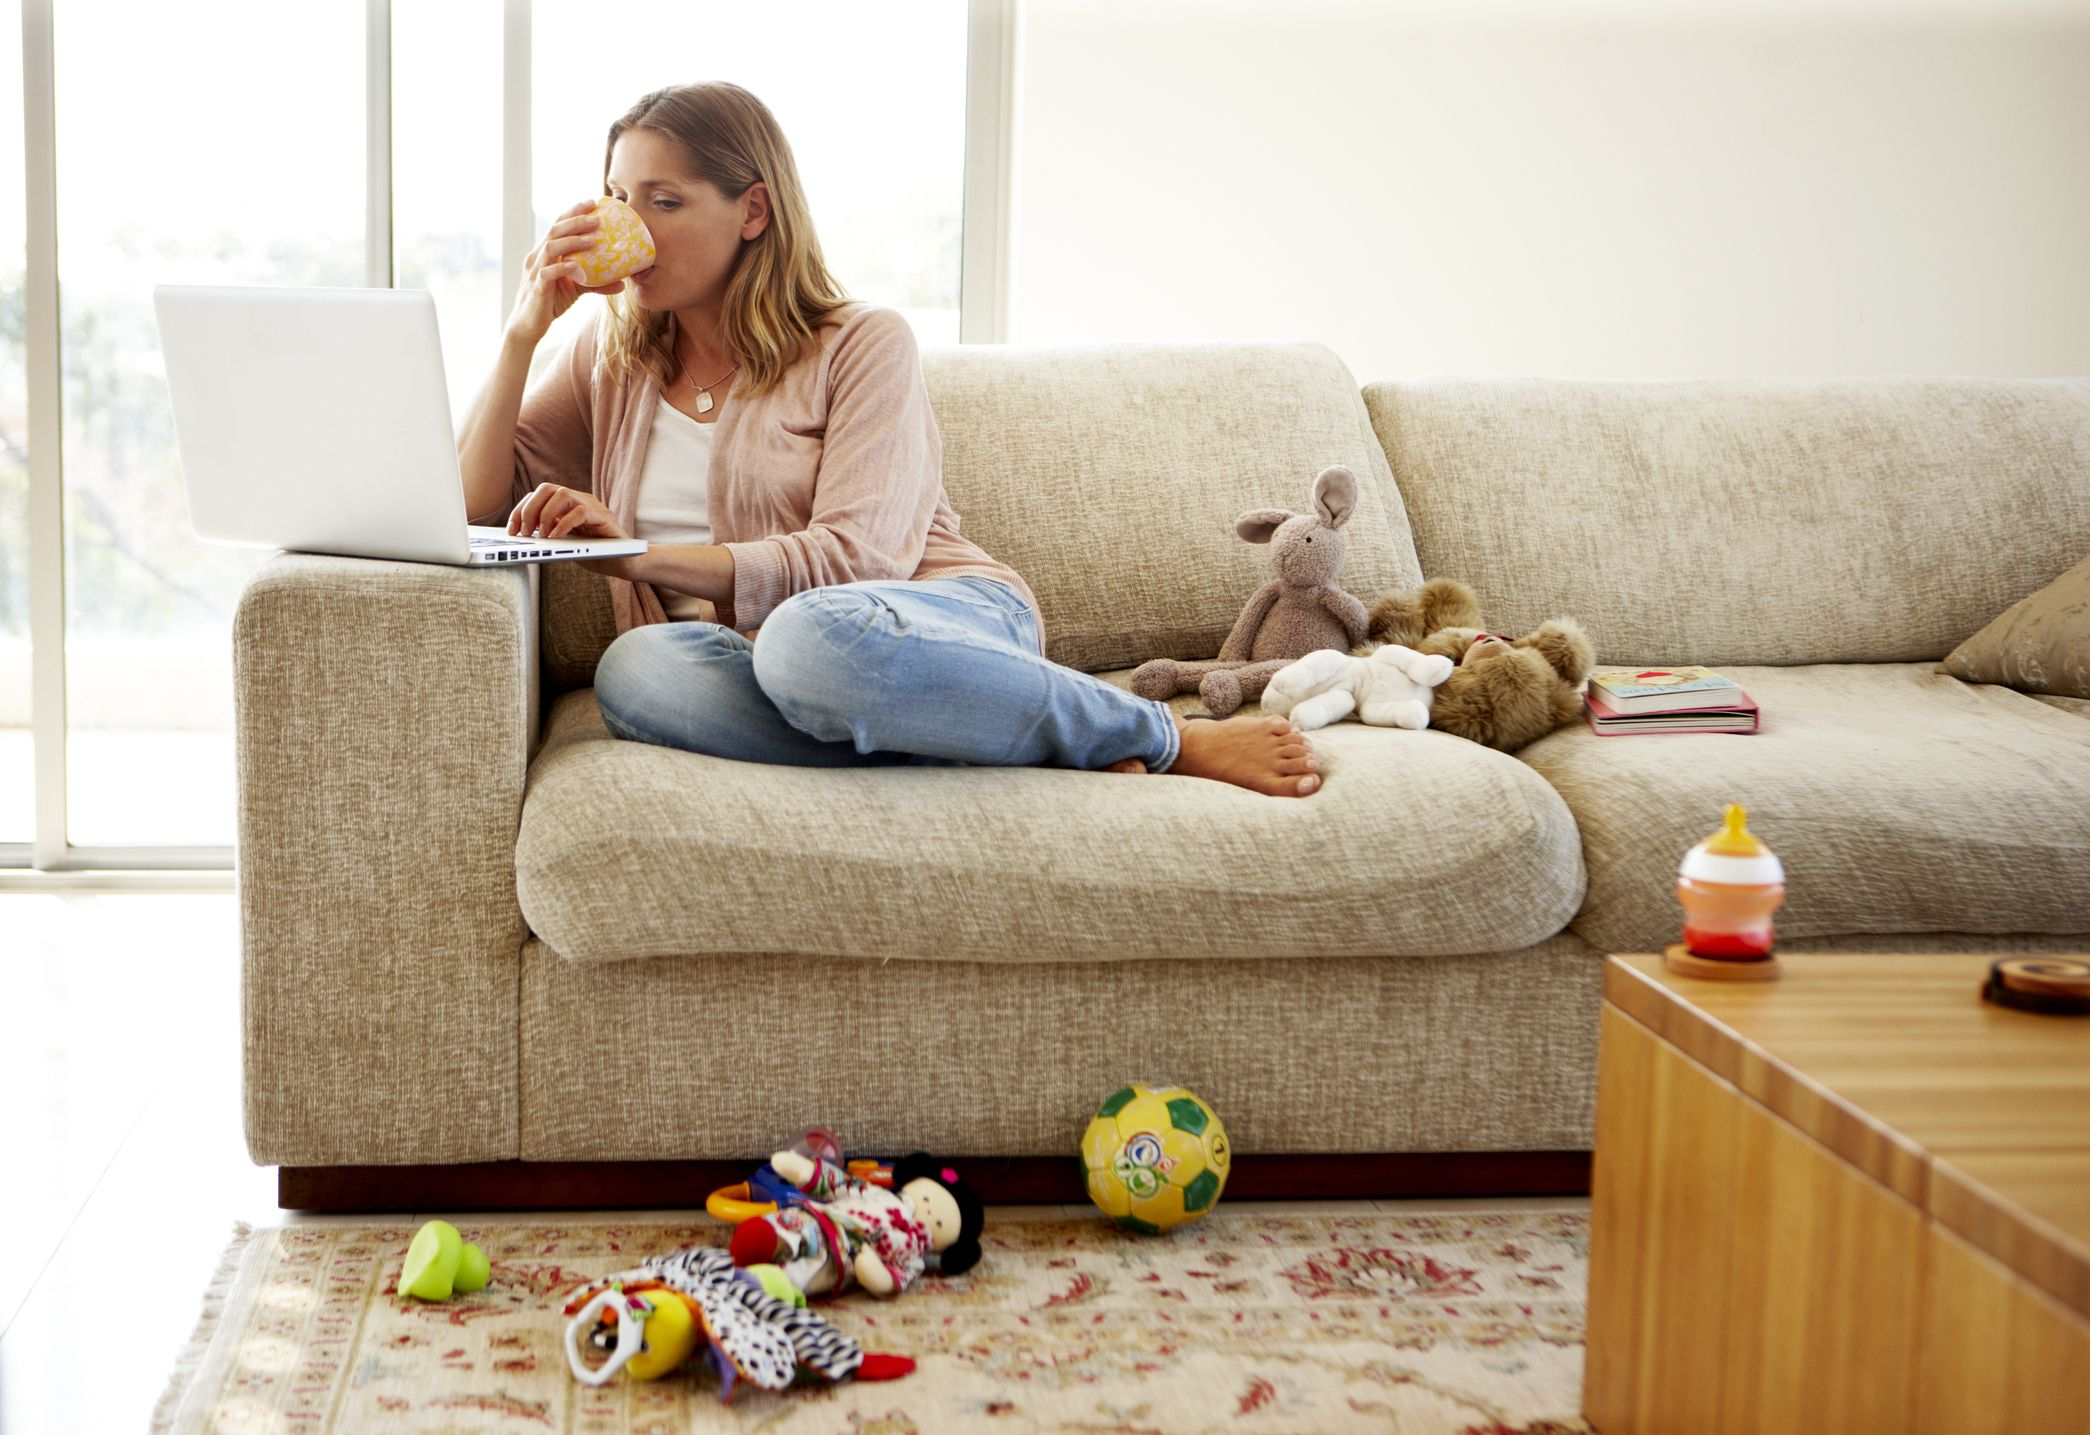 12 Surprising Ways Clutter Is Ruining Your Life Infographic